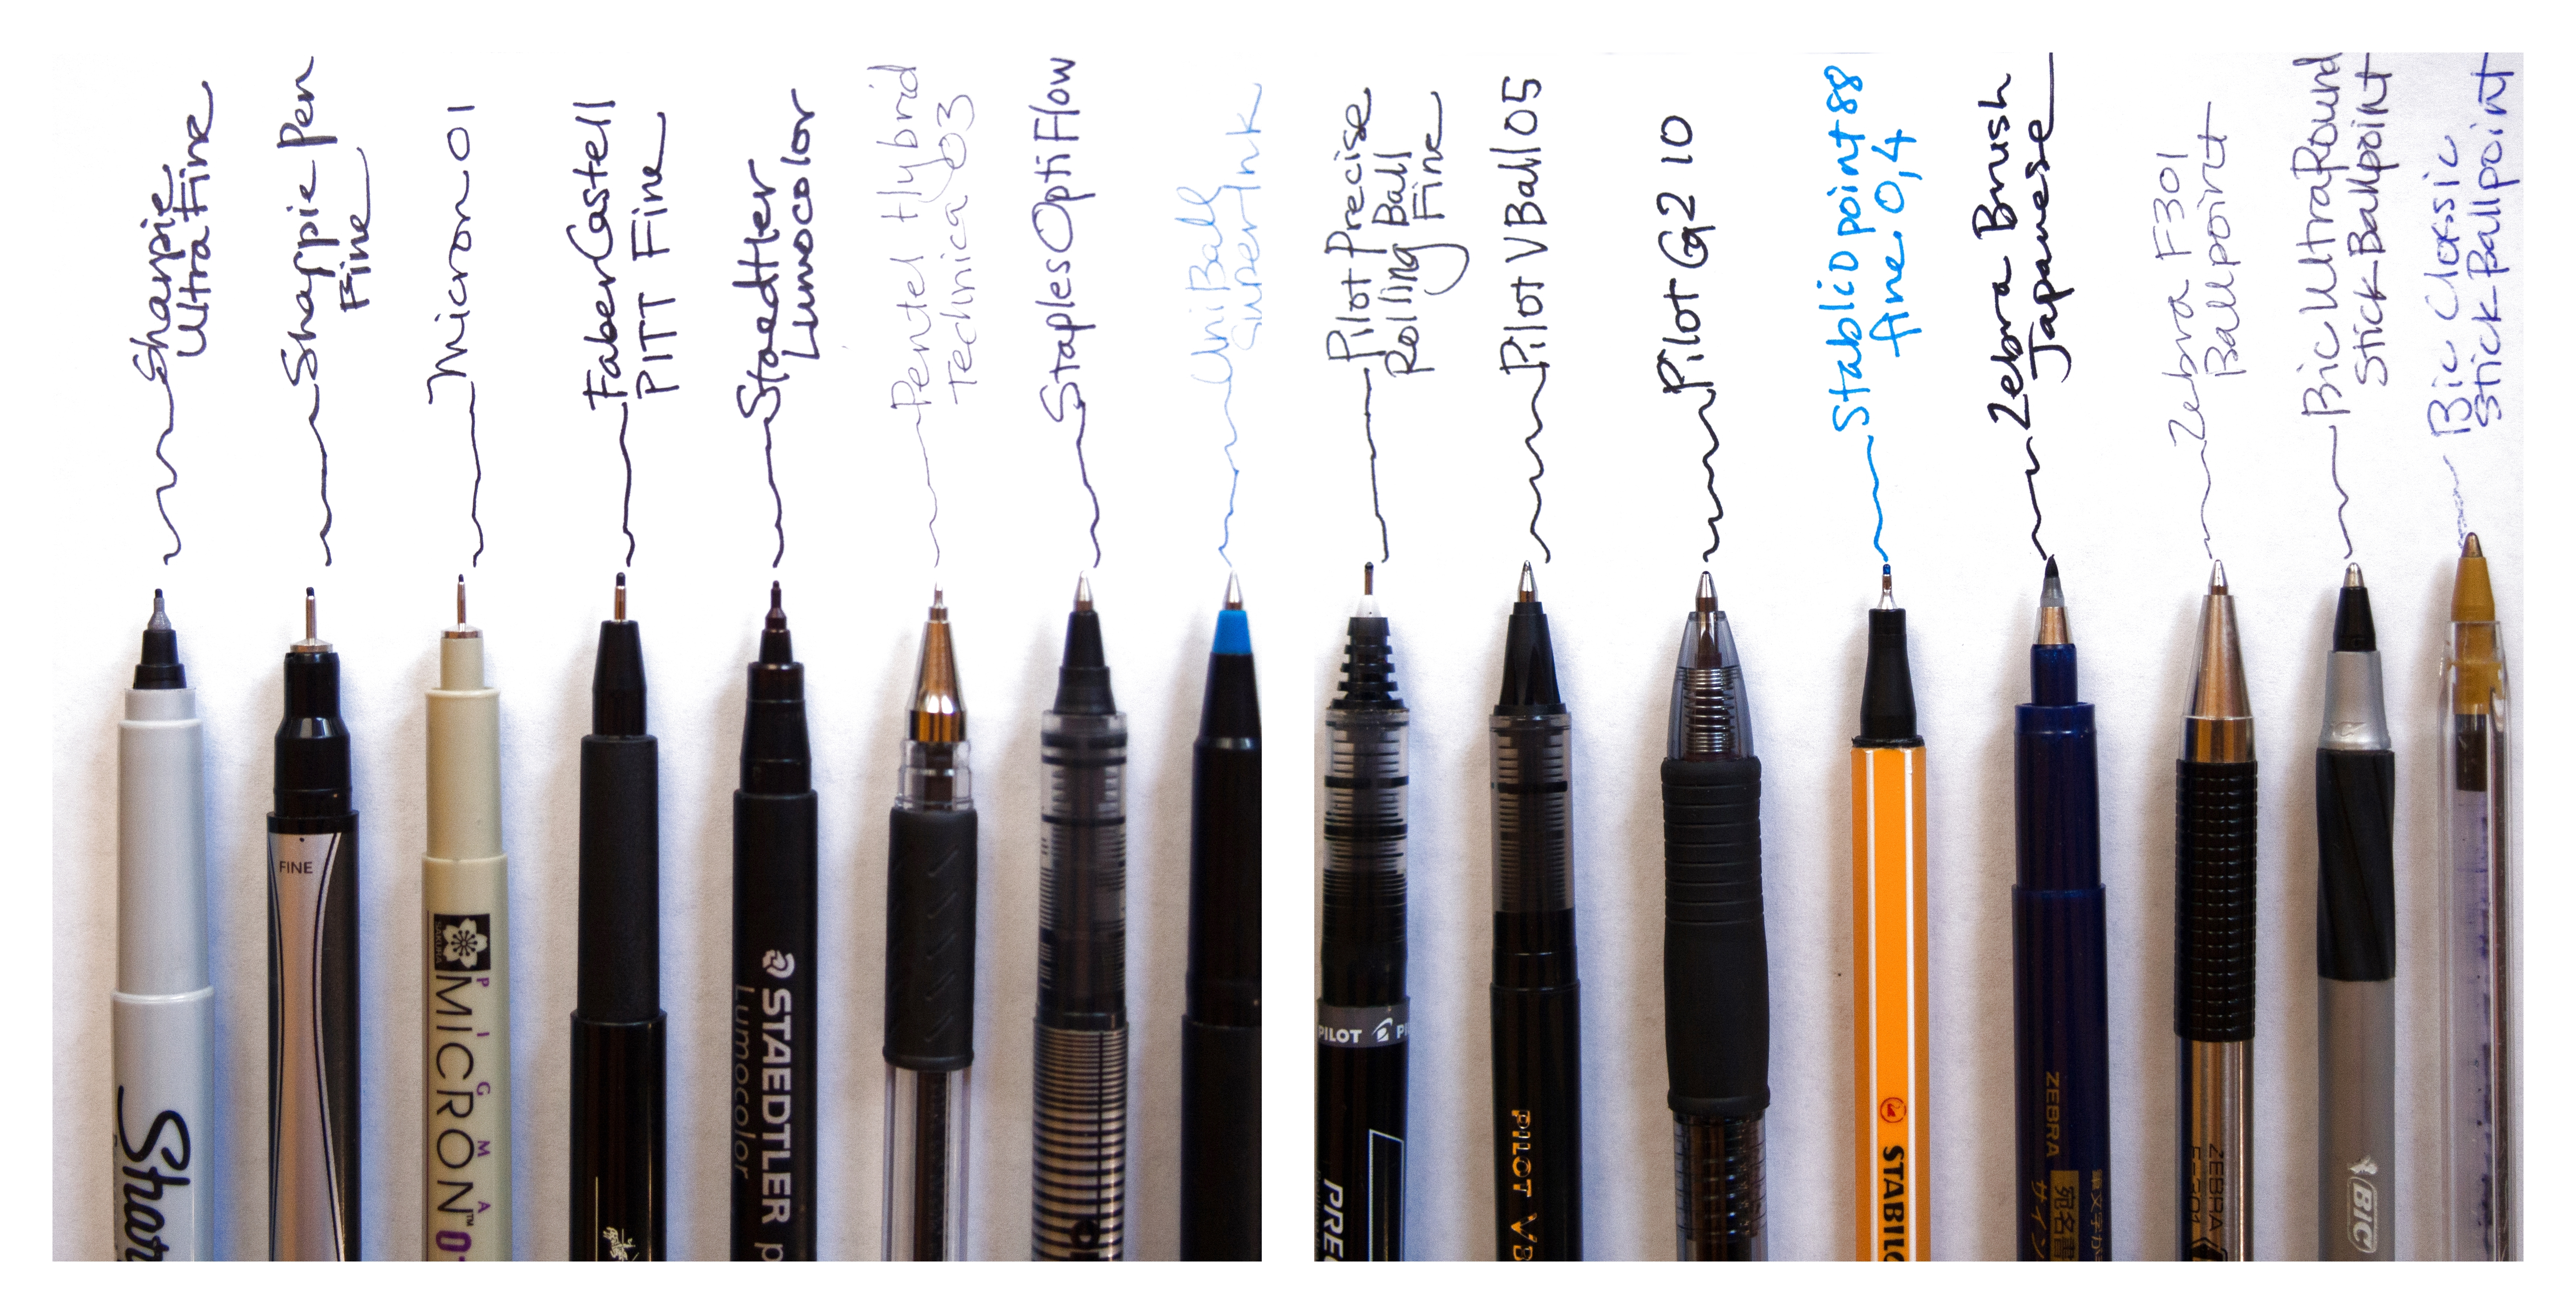 What is the best pen to write postcards with - smudgeproof and waterproof - closeup to show pen tips